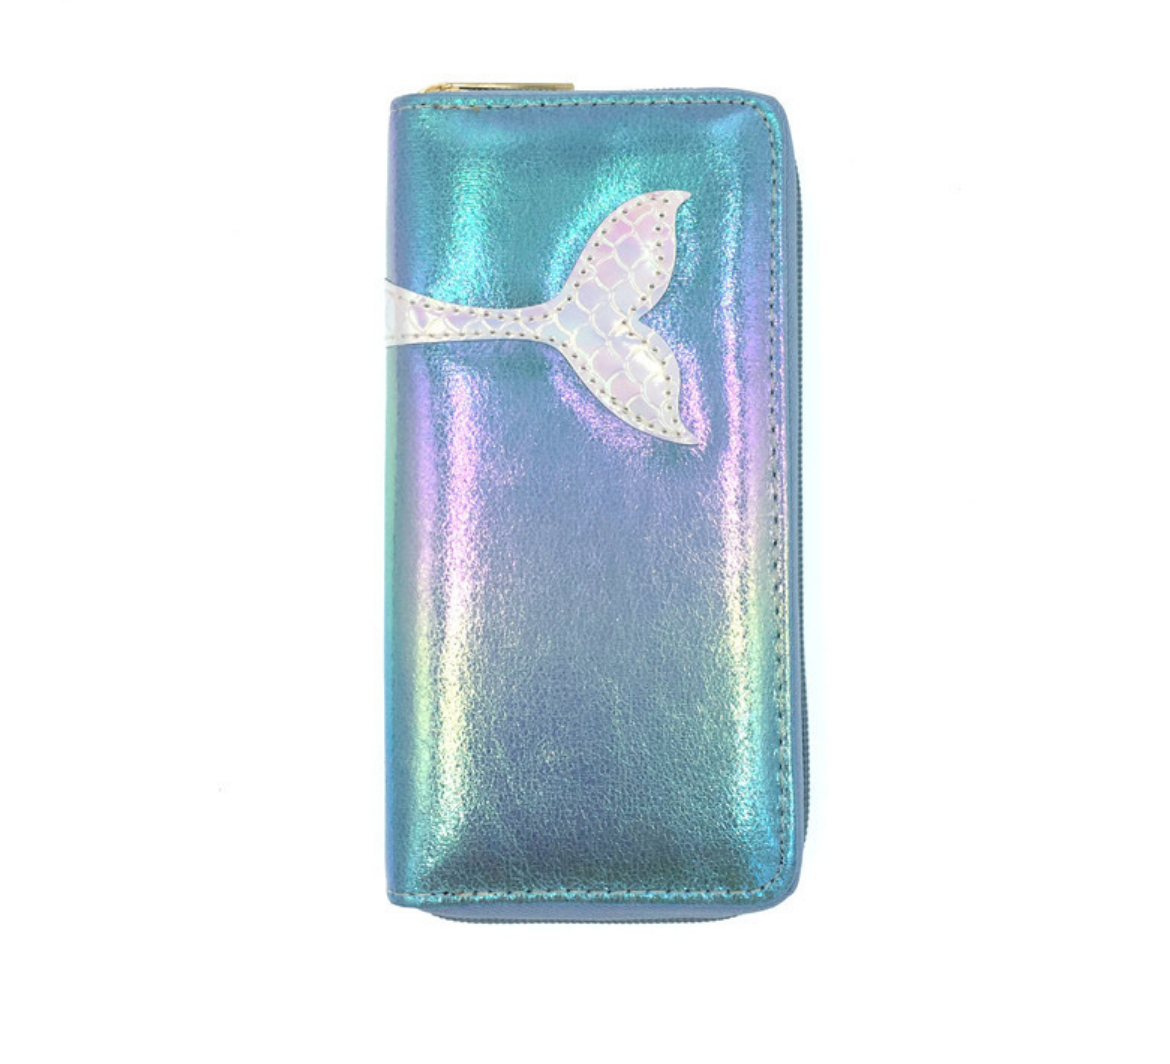 JR- 293 Mermaid Tail Blue Wallet